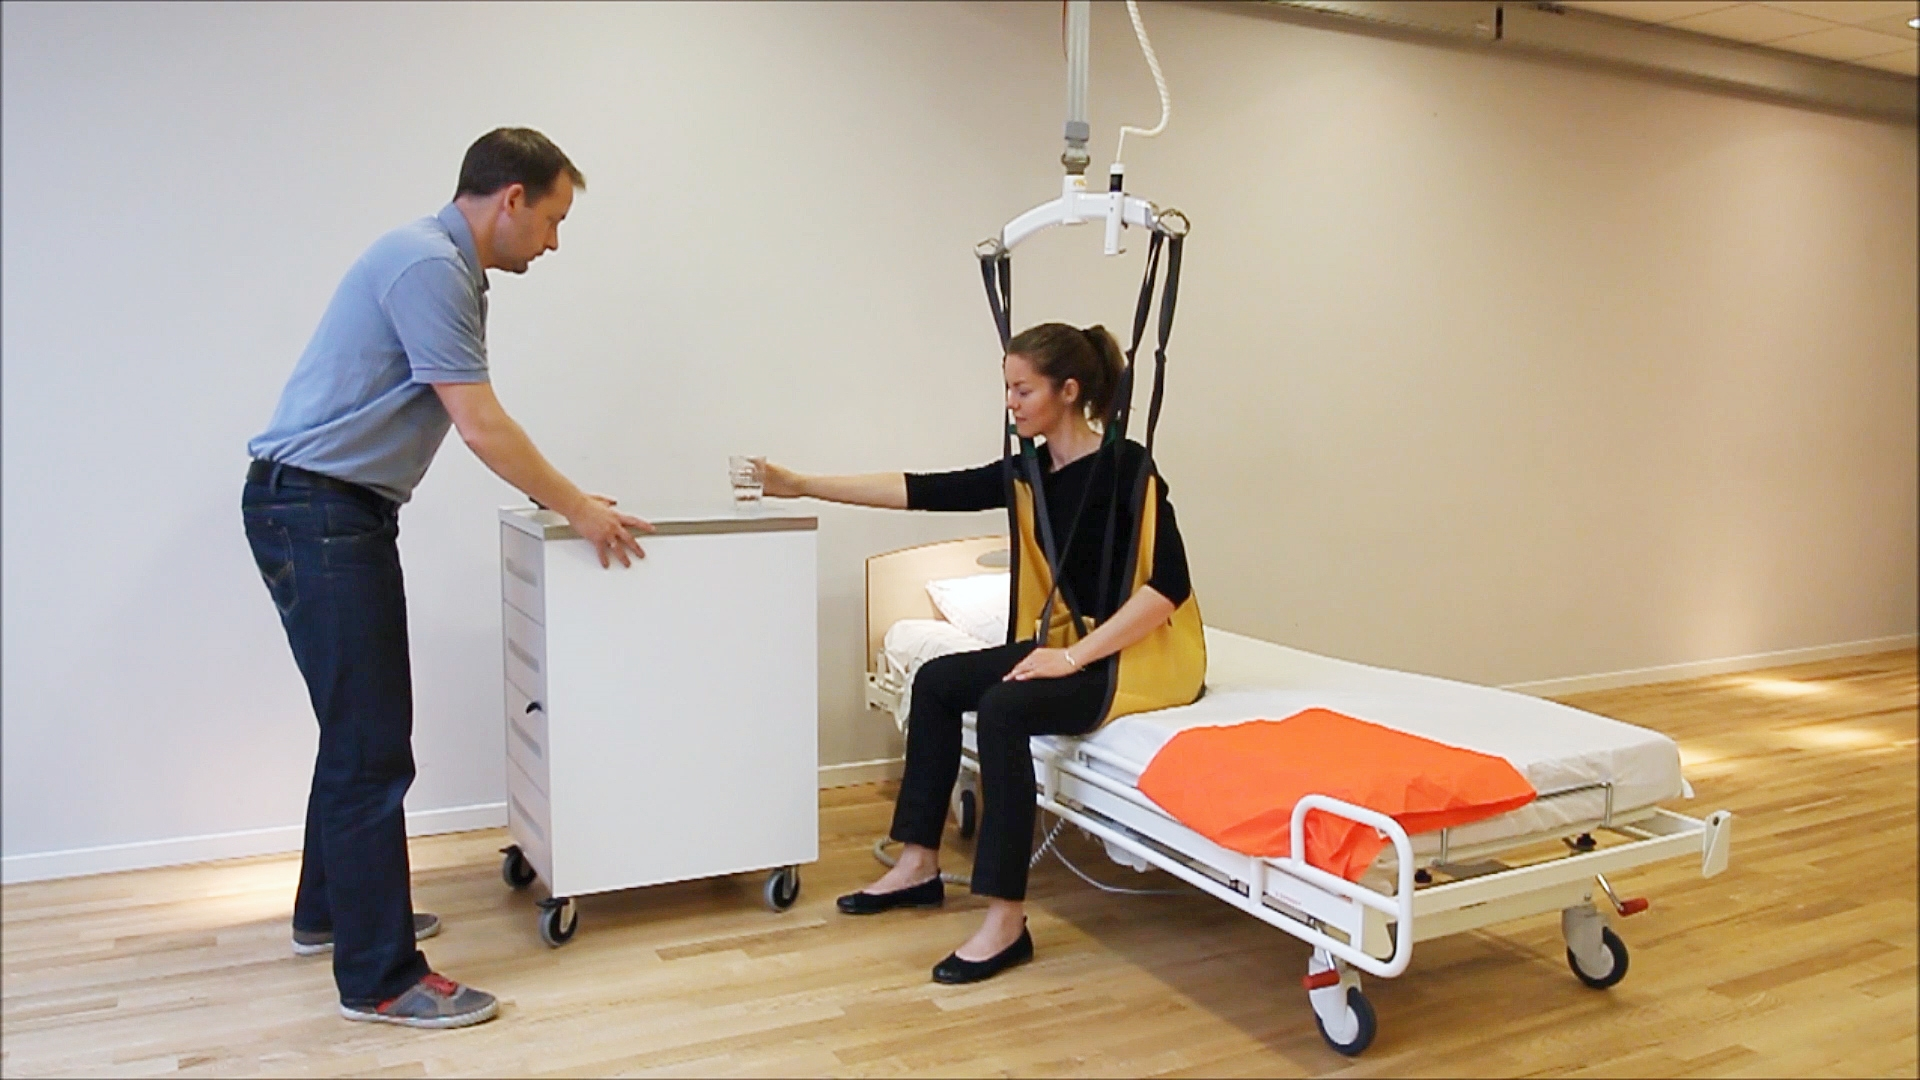 Rehabilitation exercise - Balance on bed